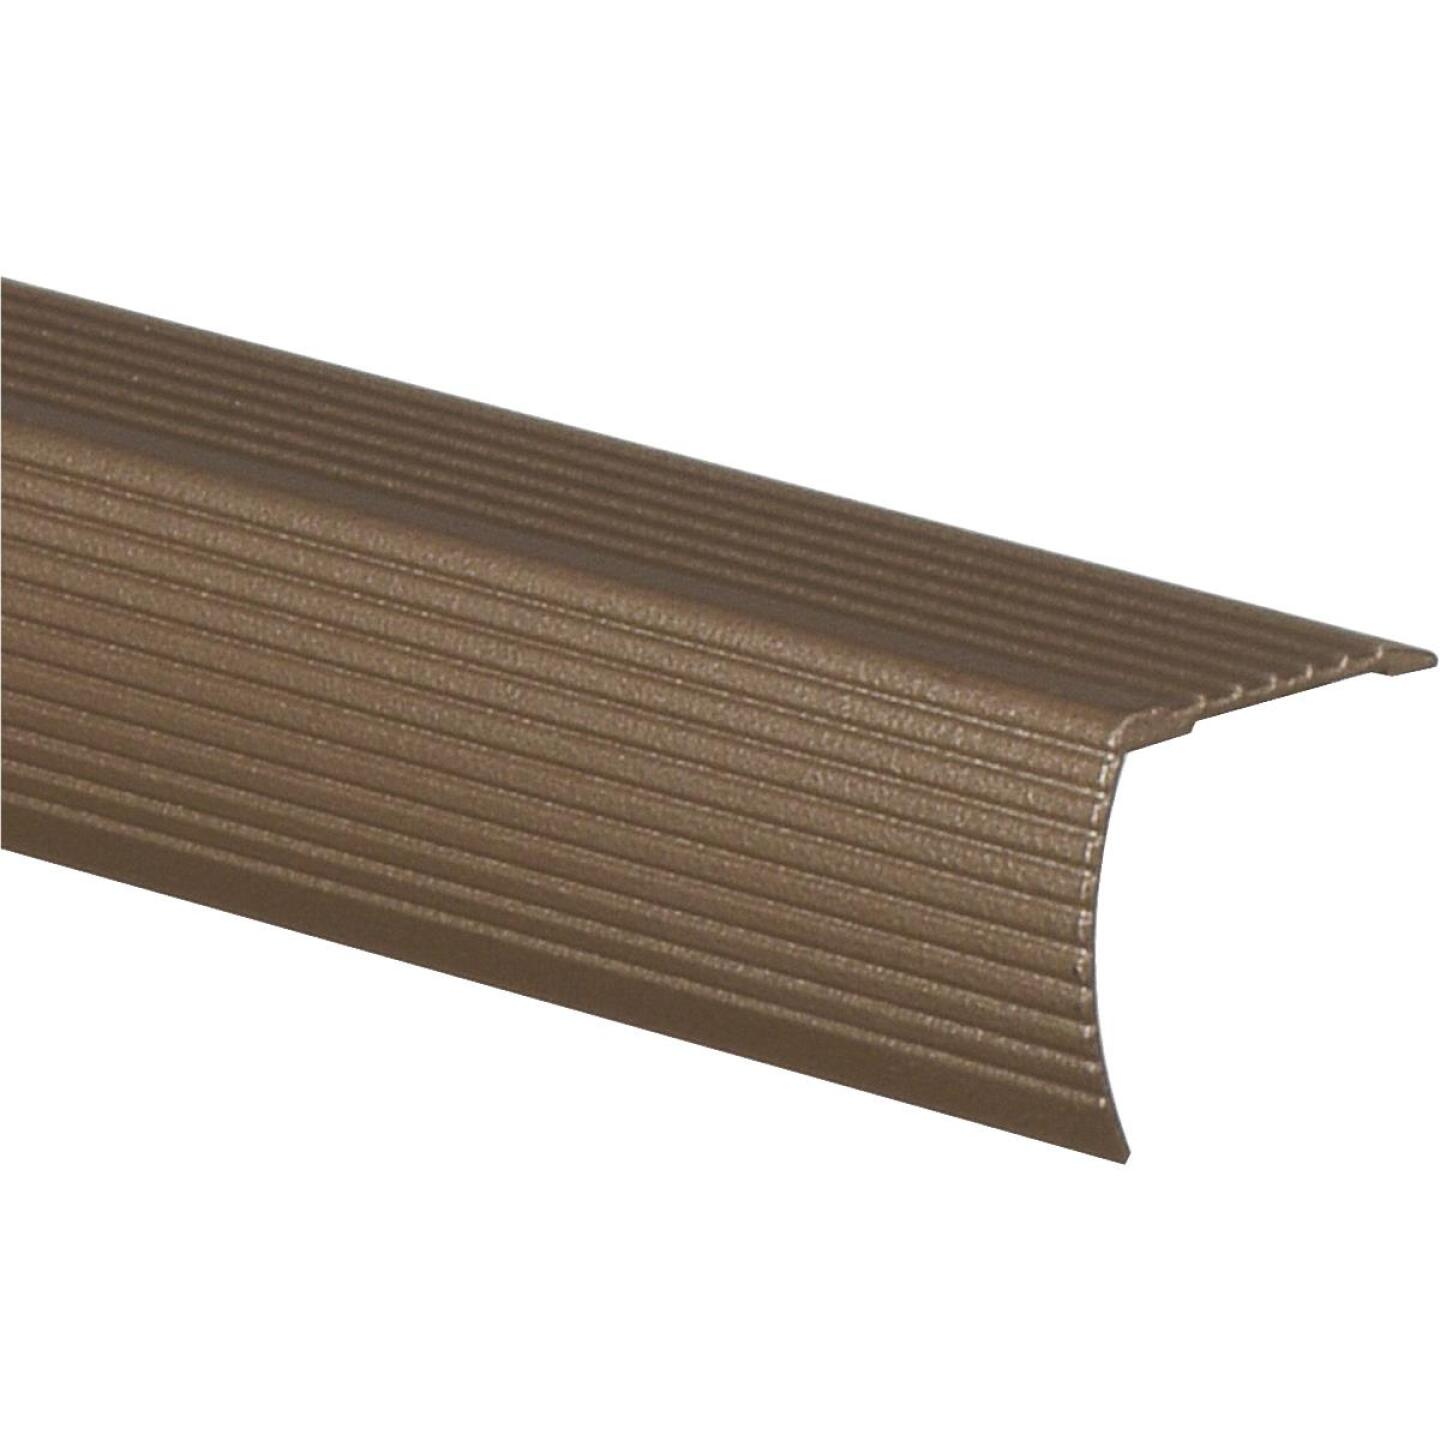 Frost King Satin Cocoa 1-1/8 In. W x 36 In. L Aluminum Stairnose Image 1